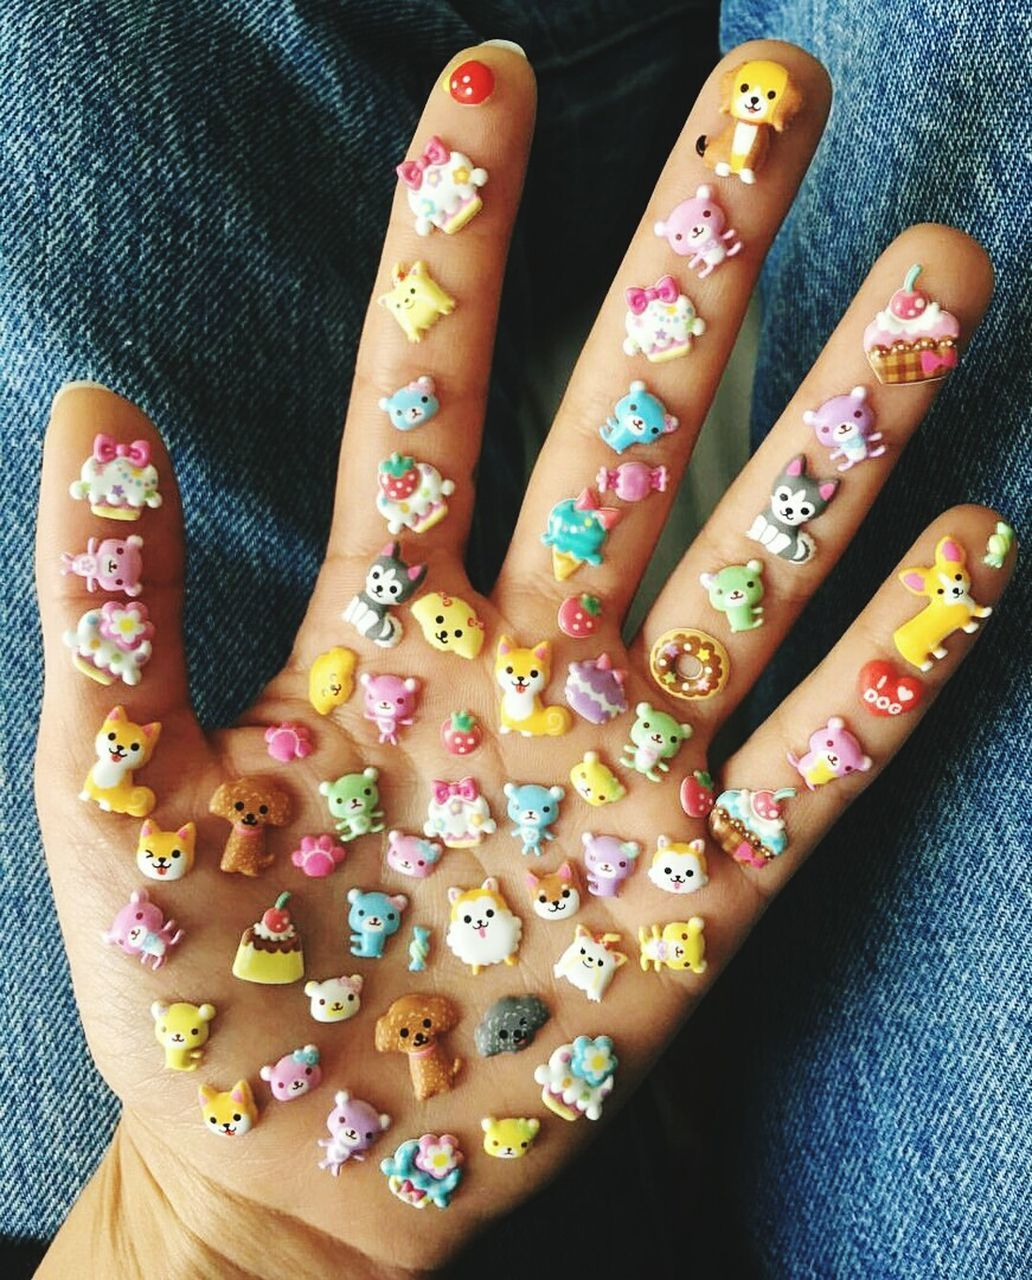 one person, real people, human finger, close-up, nail art, human body part, human hand, indoors, high angle view, nail polish, celebration, multi colored, day, freshness